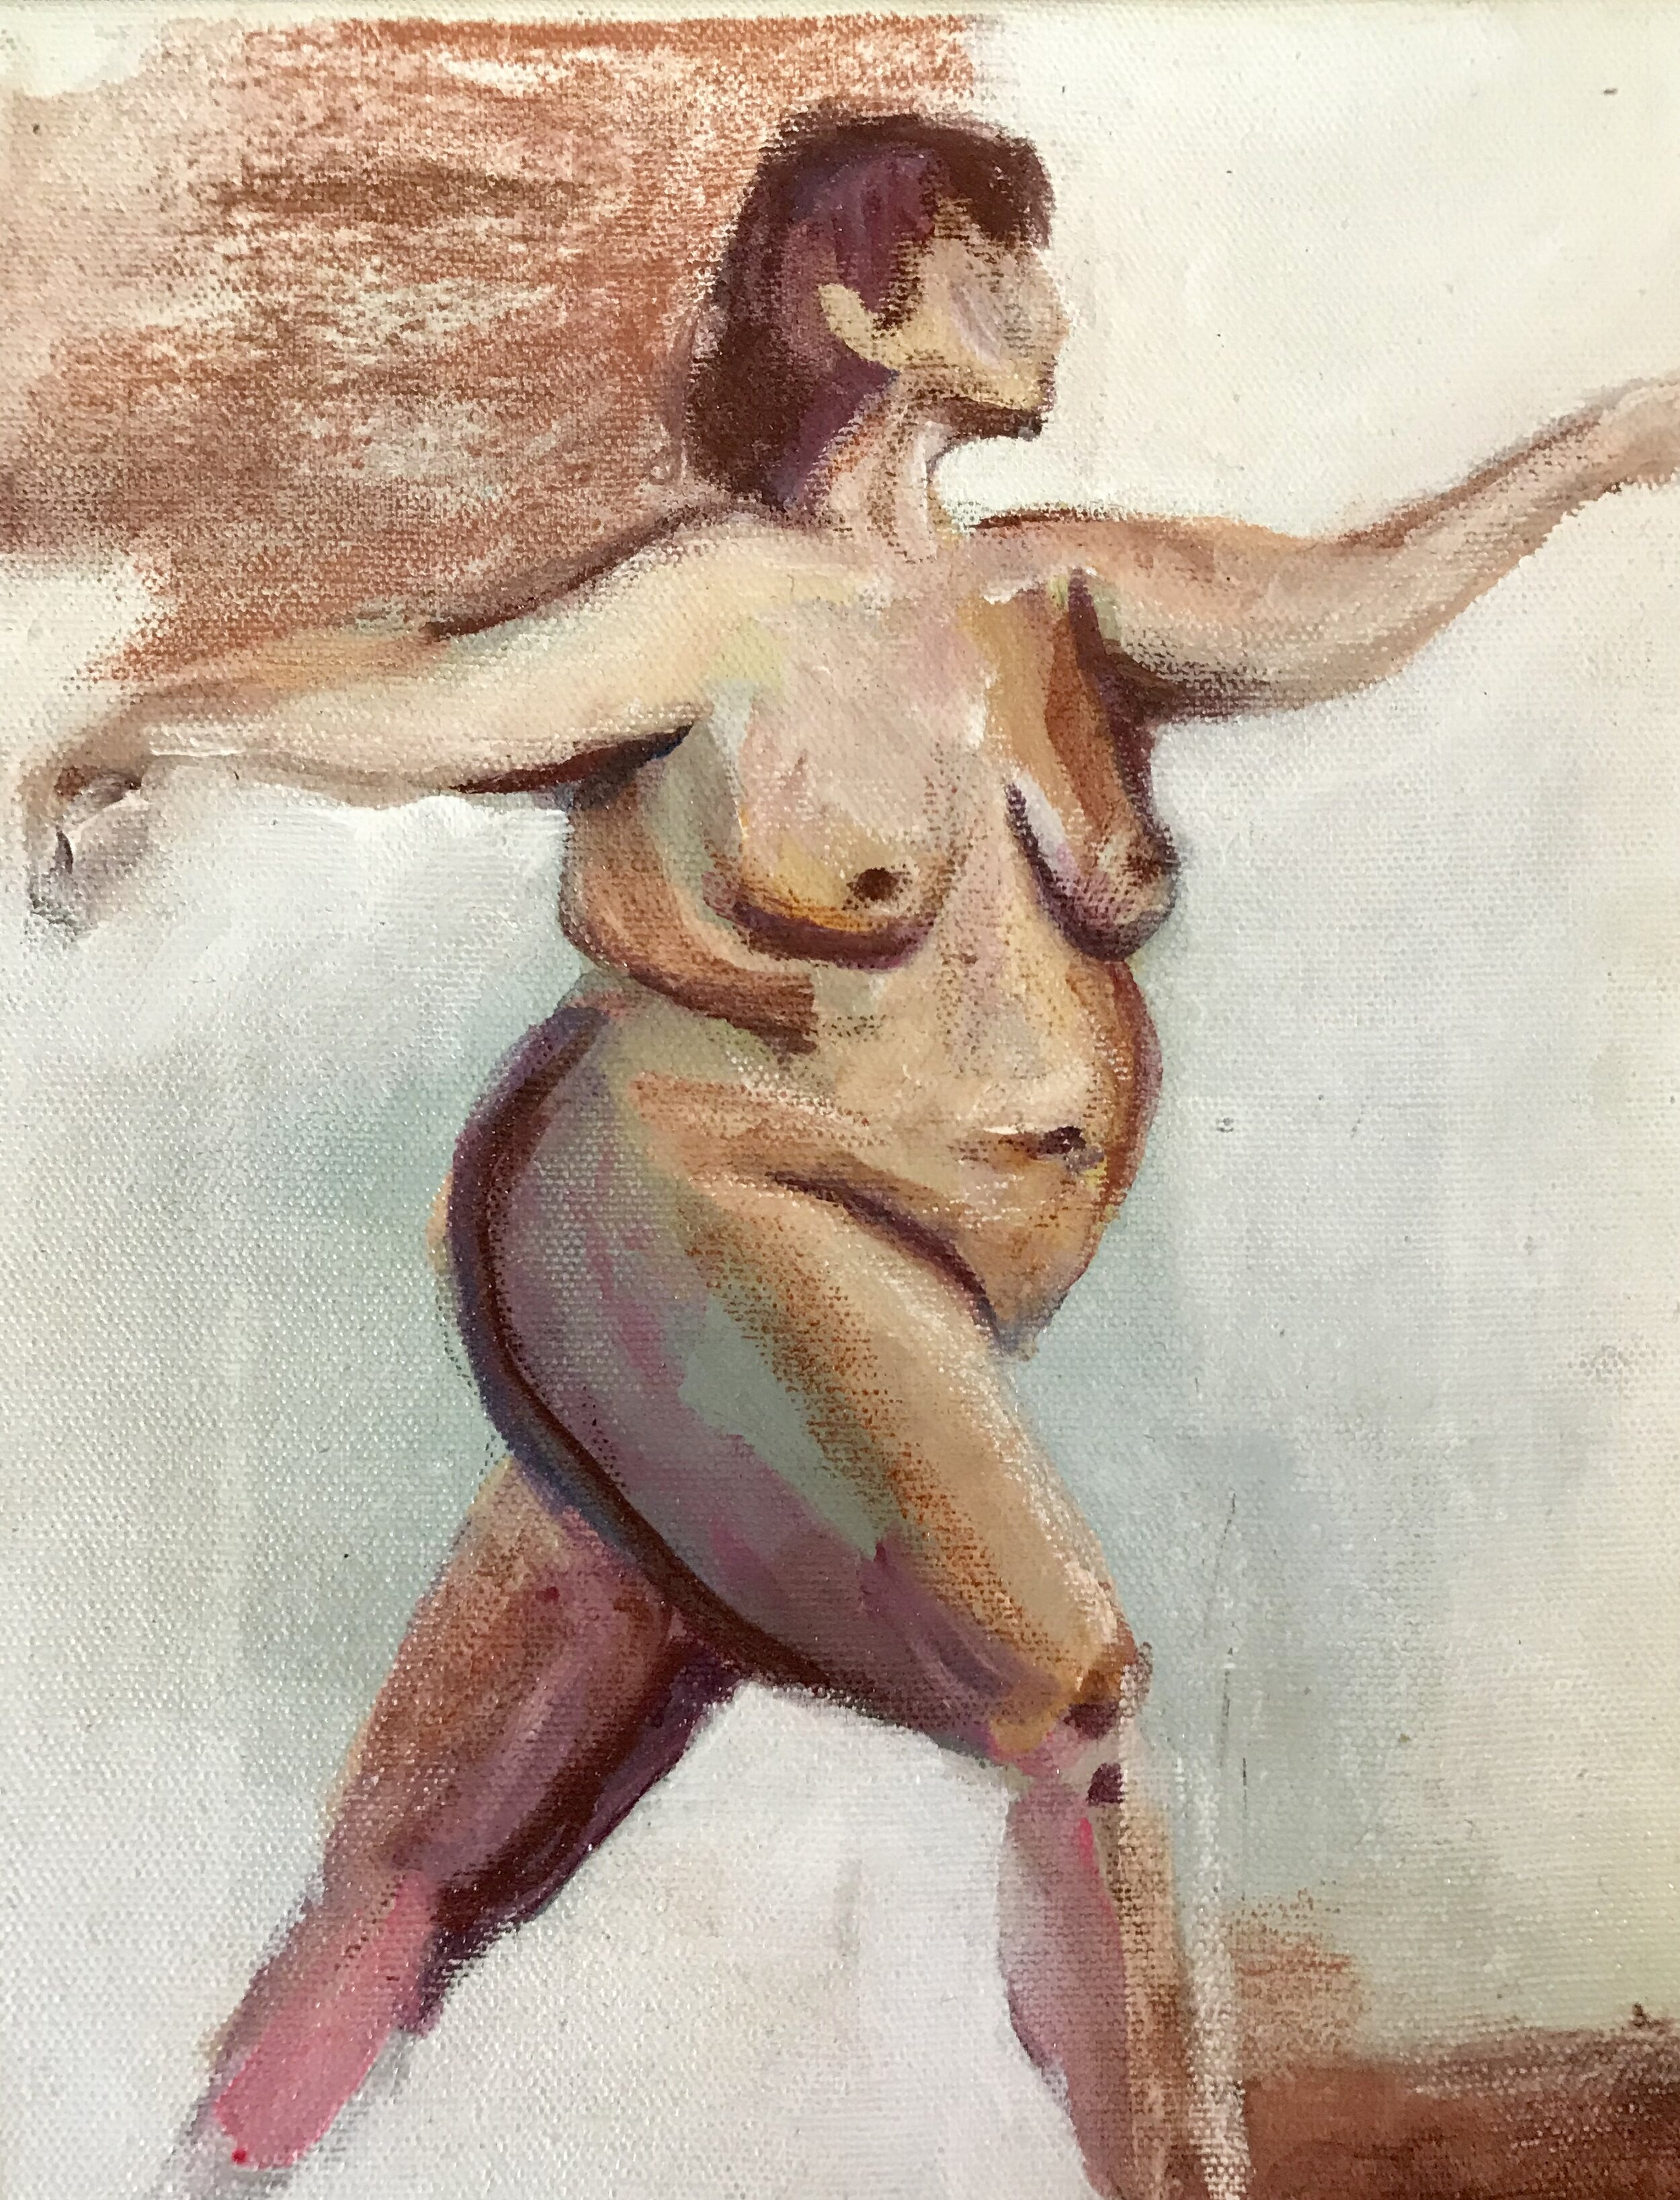 dresseD - a collection of nude paintings